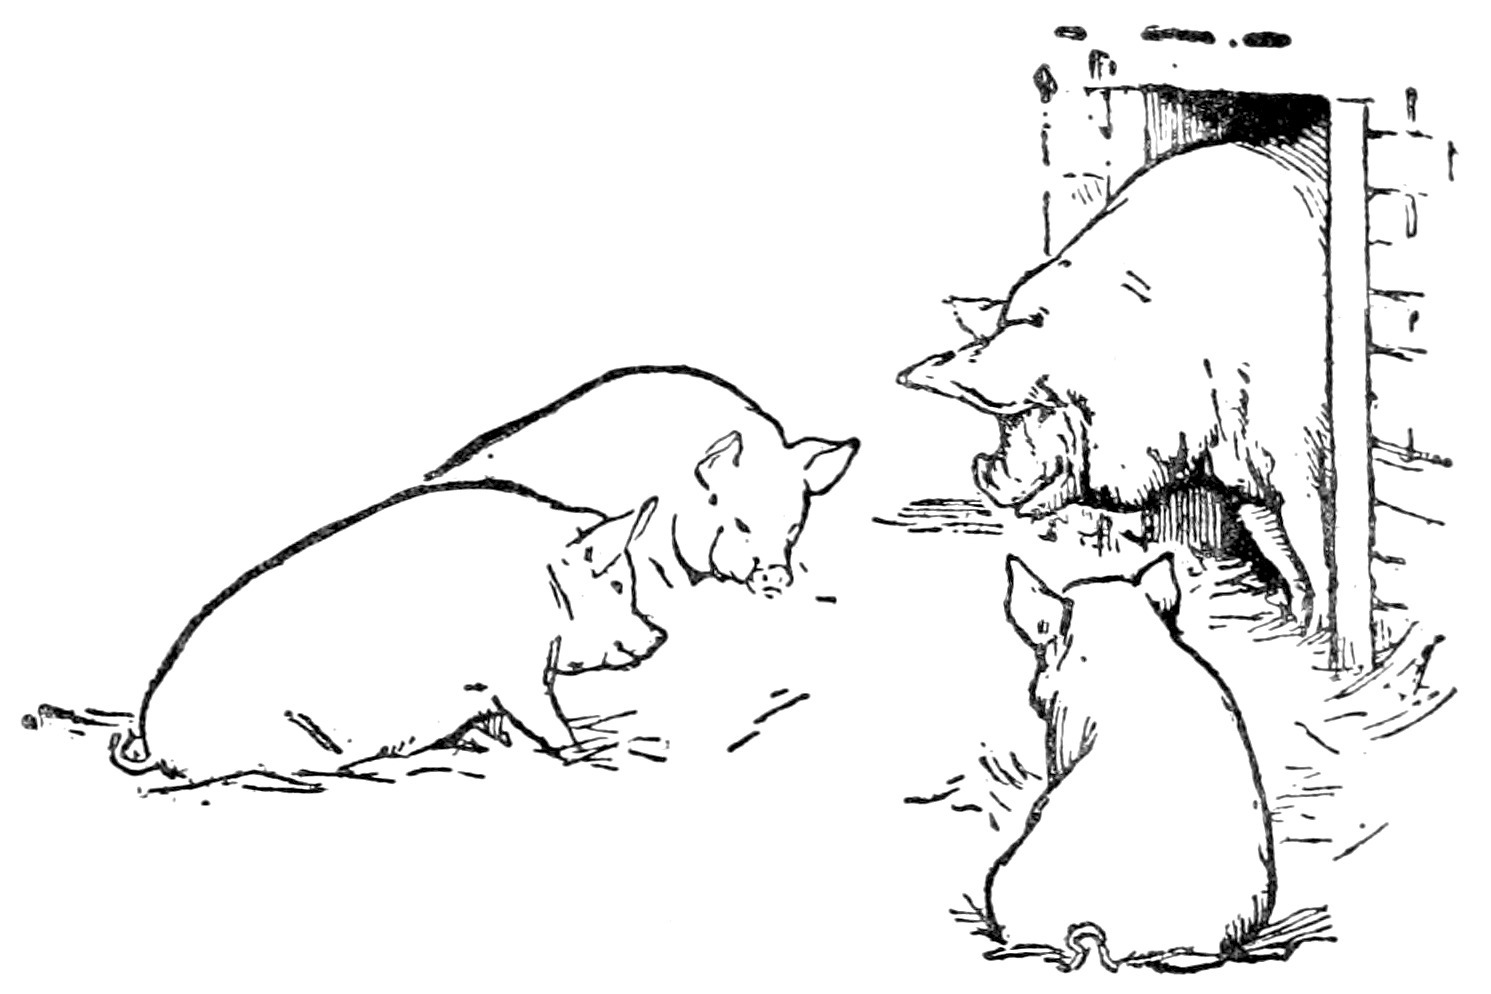 1491x994 Illustration In English Fairy Tales, Jacobs, J., 1895, via Boston Public Library, Three Little Pigs, in Three little pigs scared of big bad sun and wind wolves, by John S. Quarterman, for WWALS.net, 8 January 2018